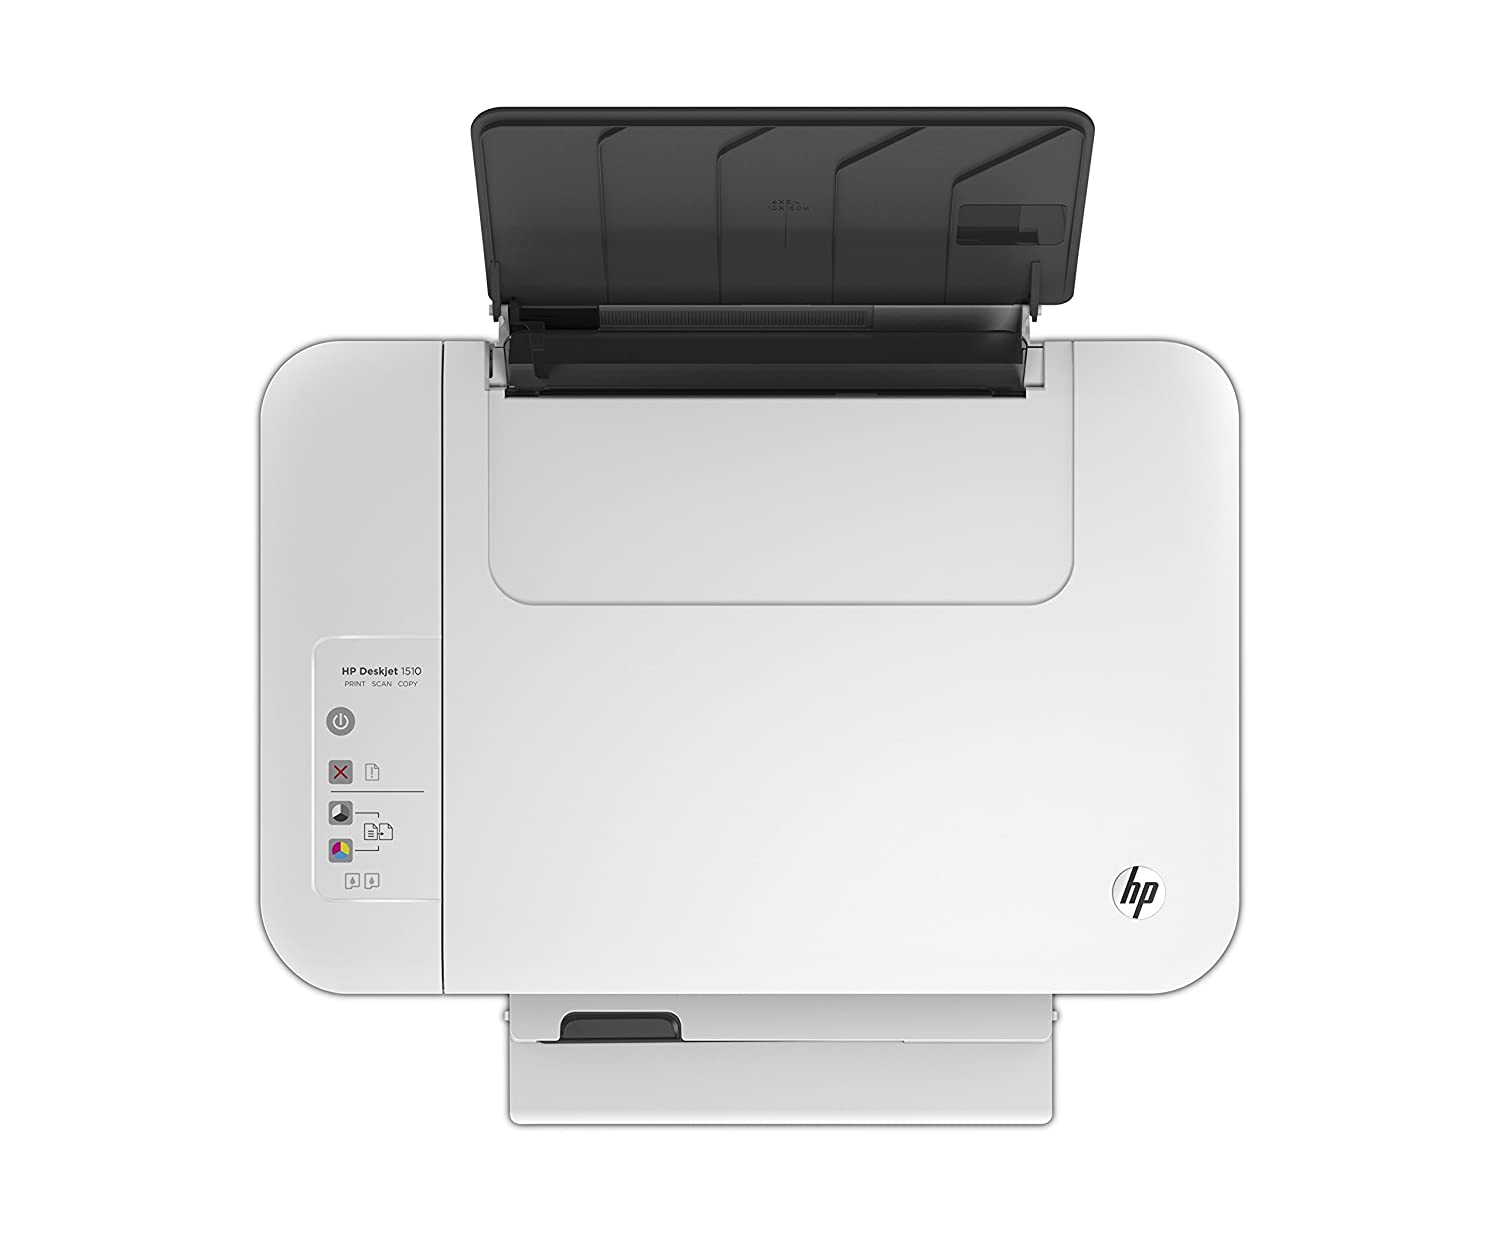 HP Deskjet 1512 All-in-One - Impresora multifunción de tinta ...